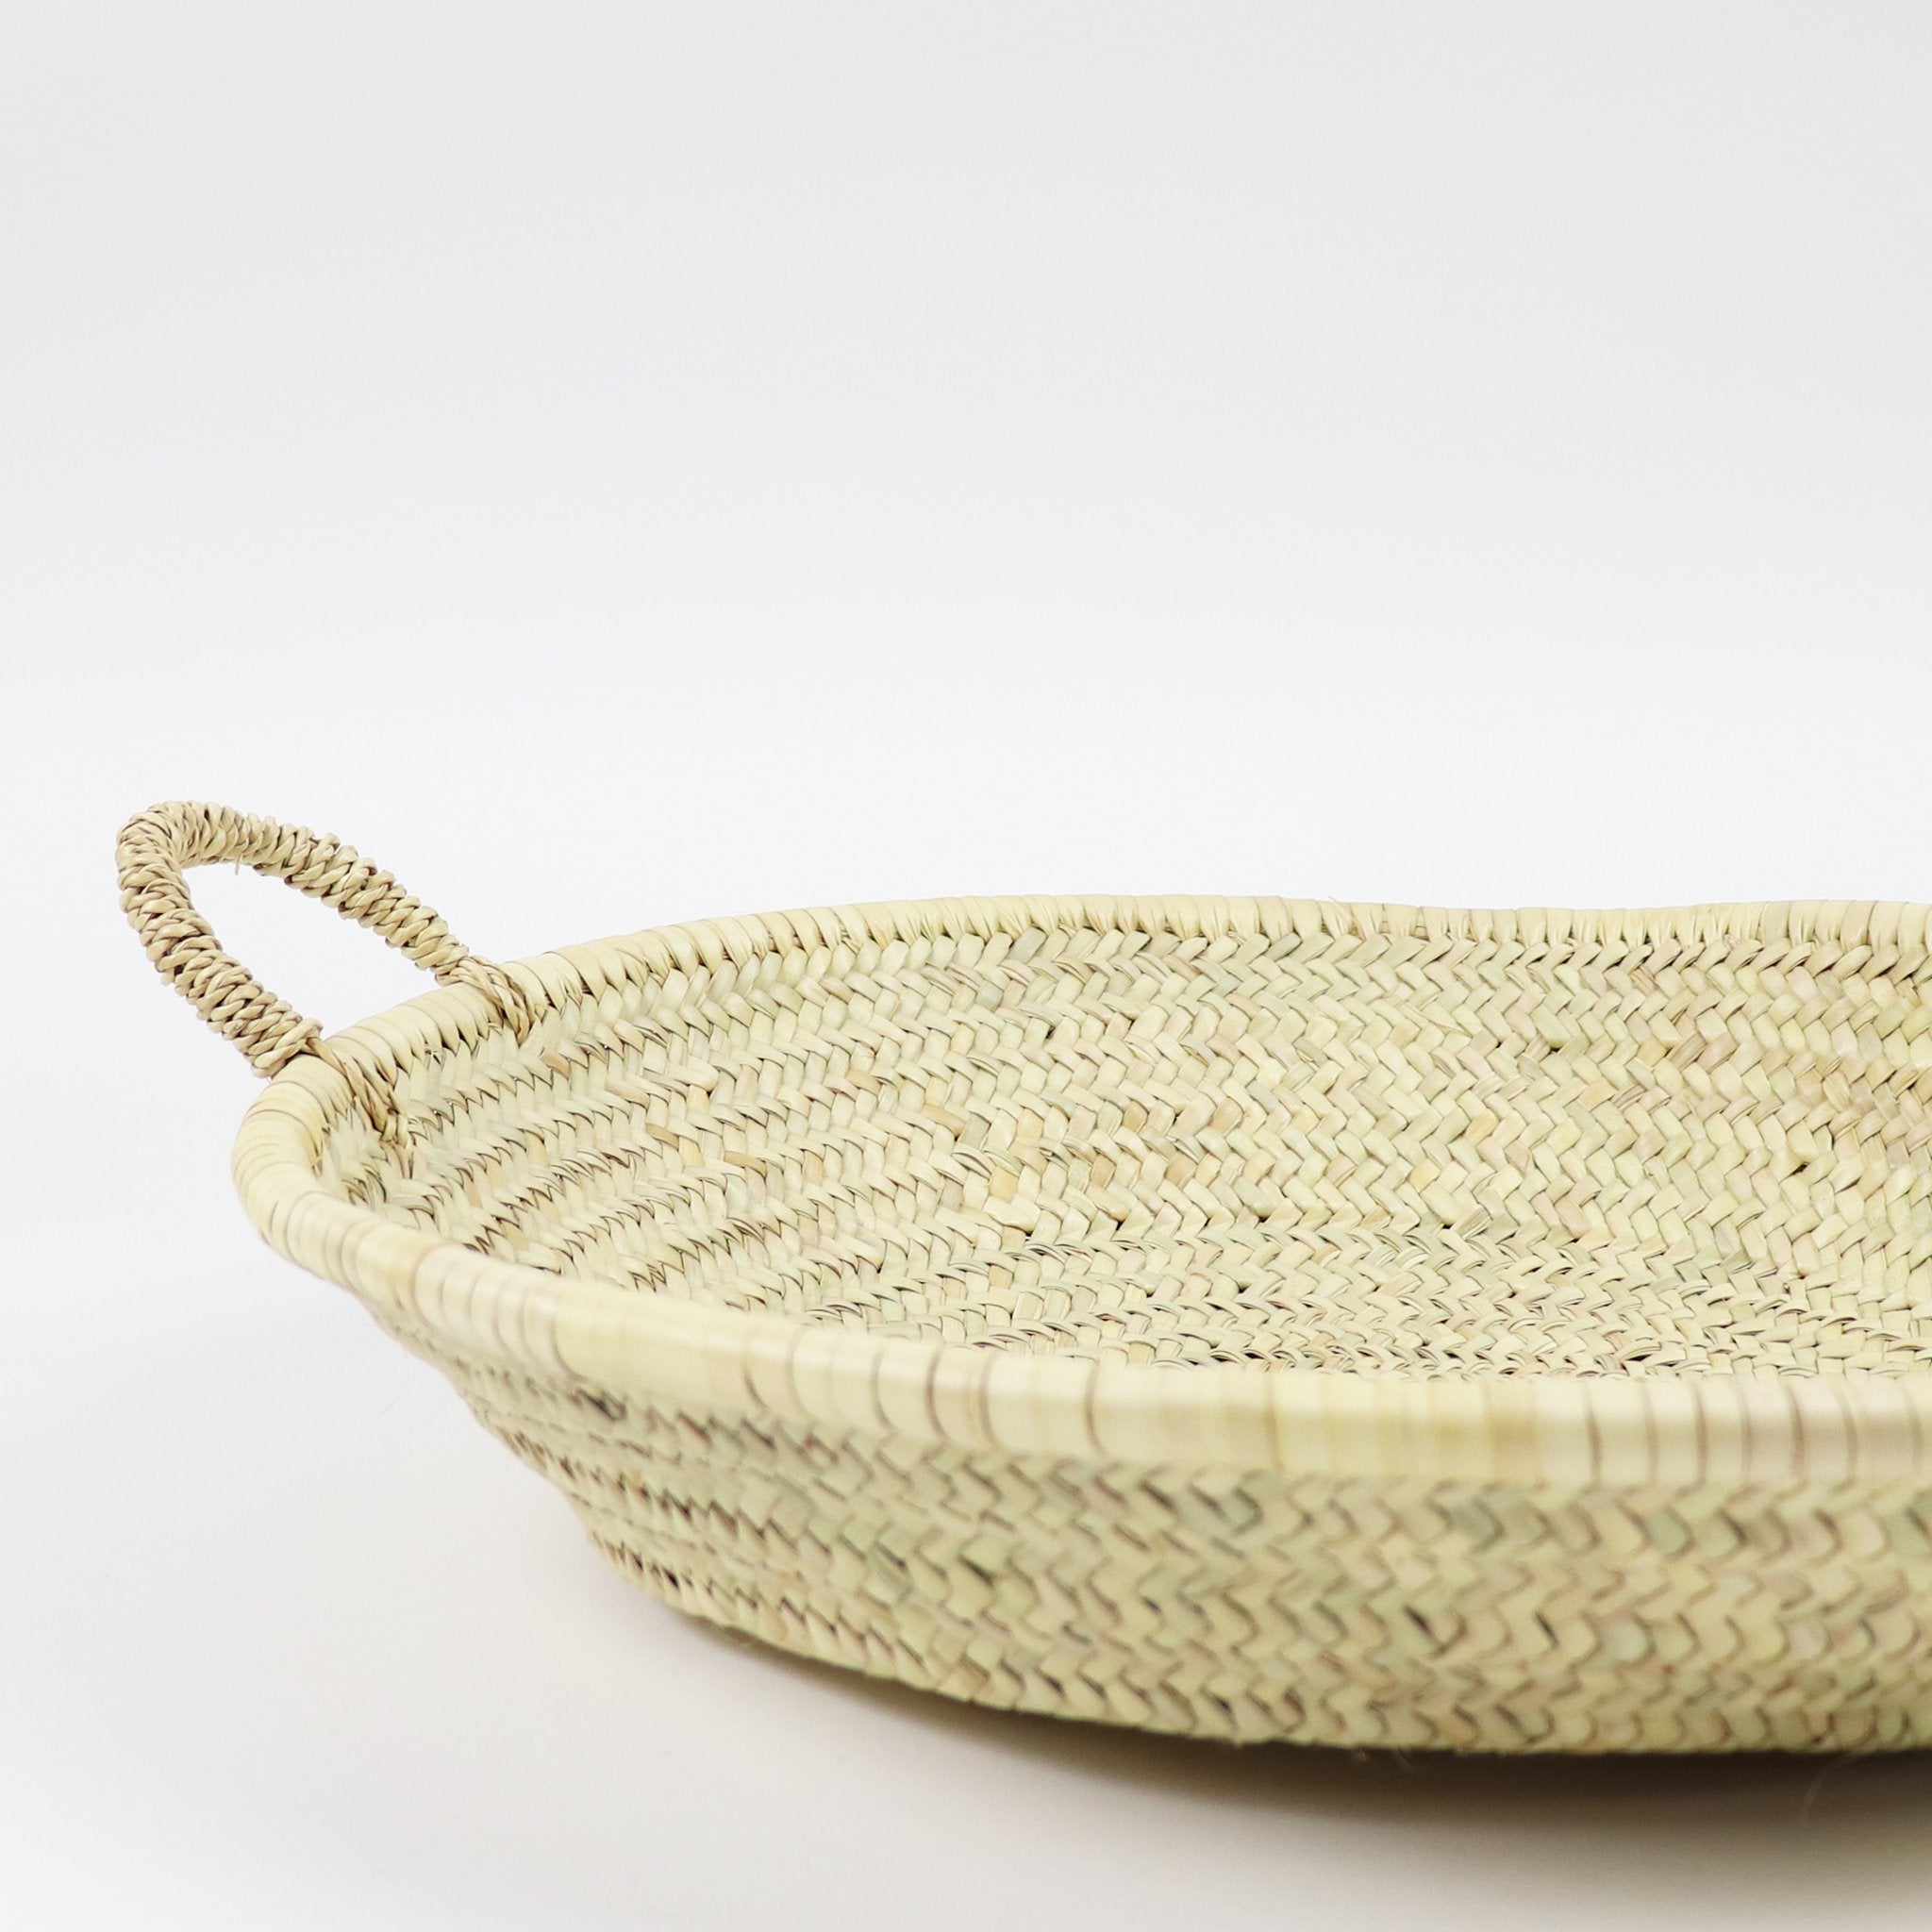 Woven plate in natural color made from palm leaf